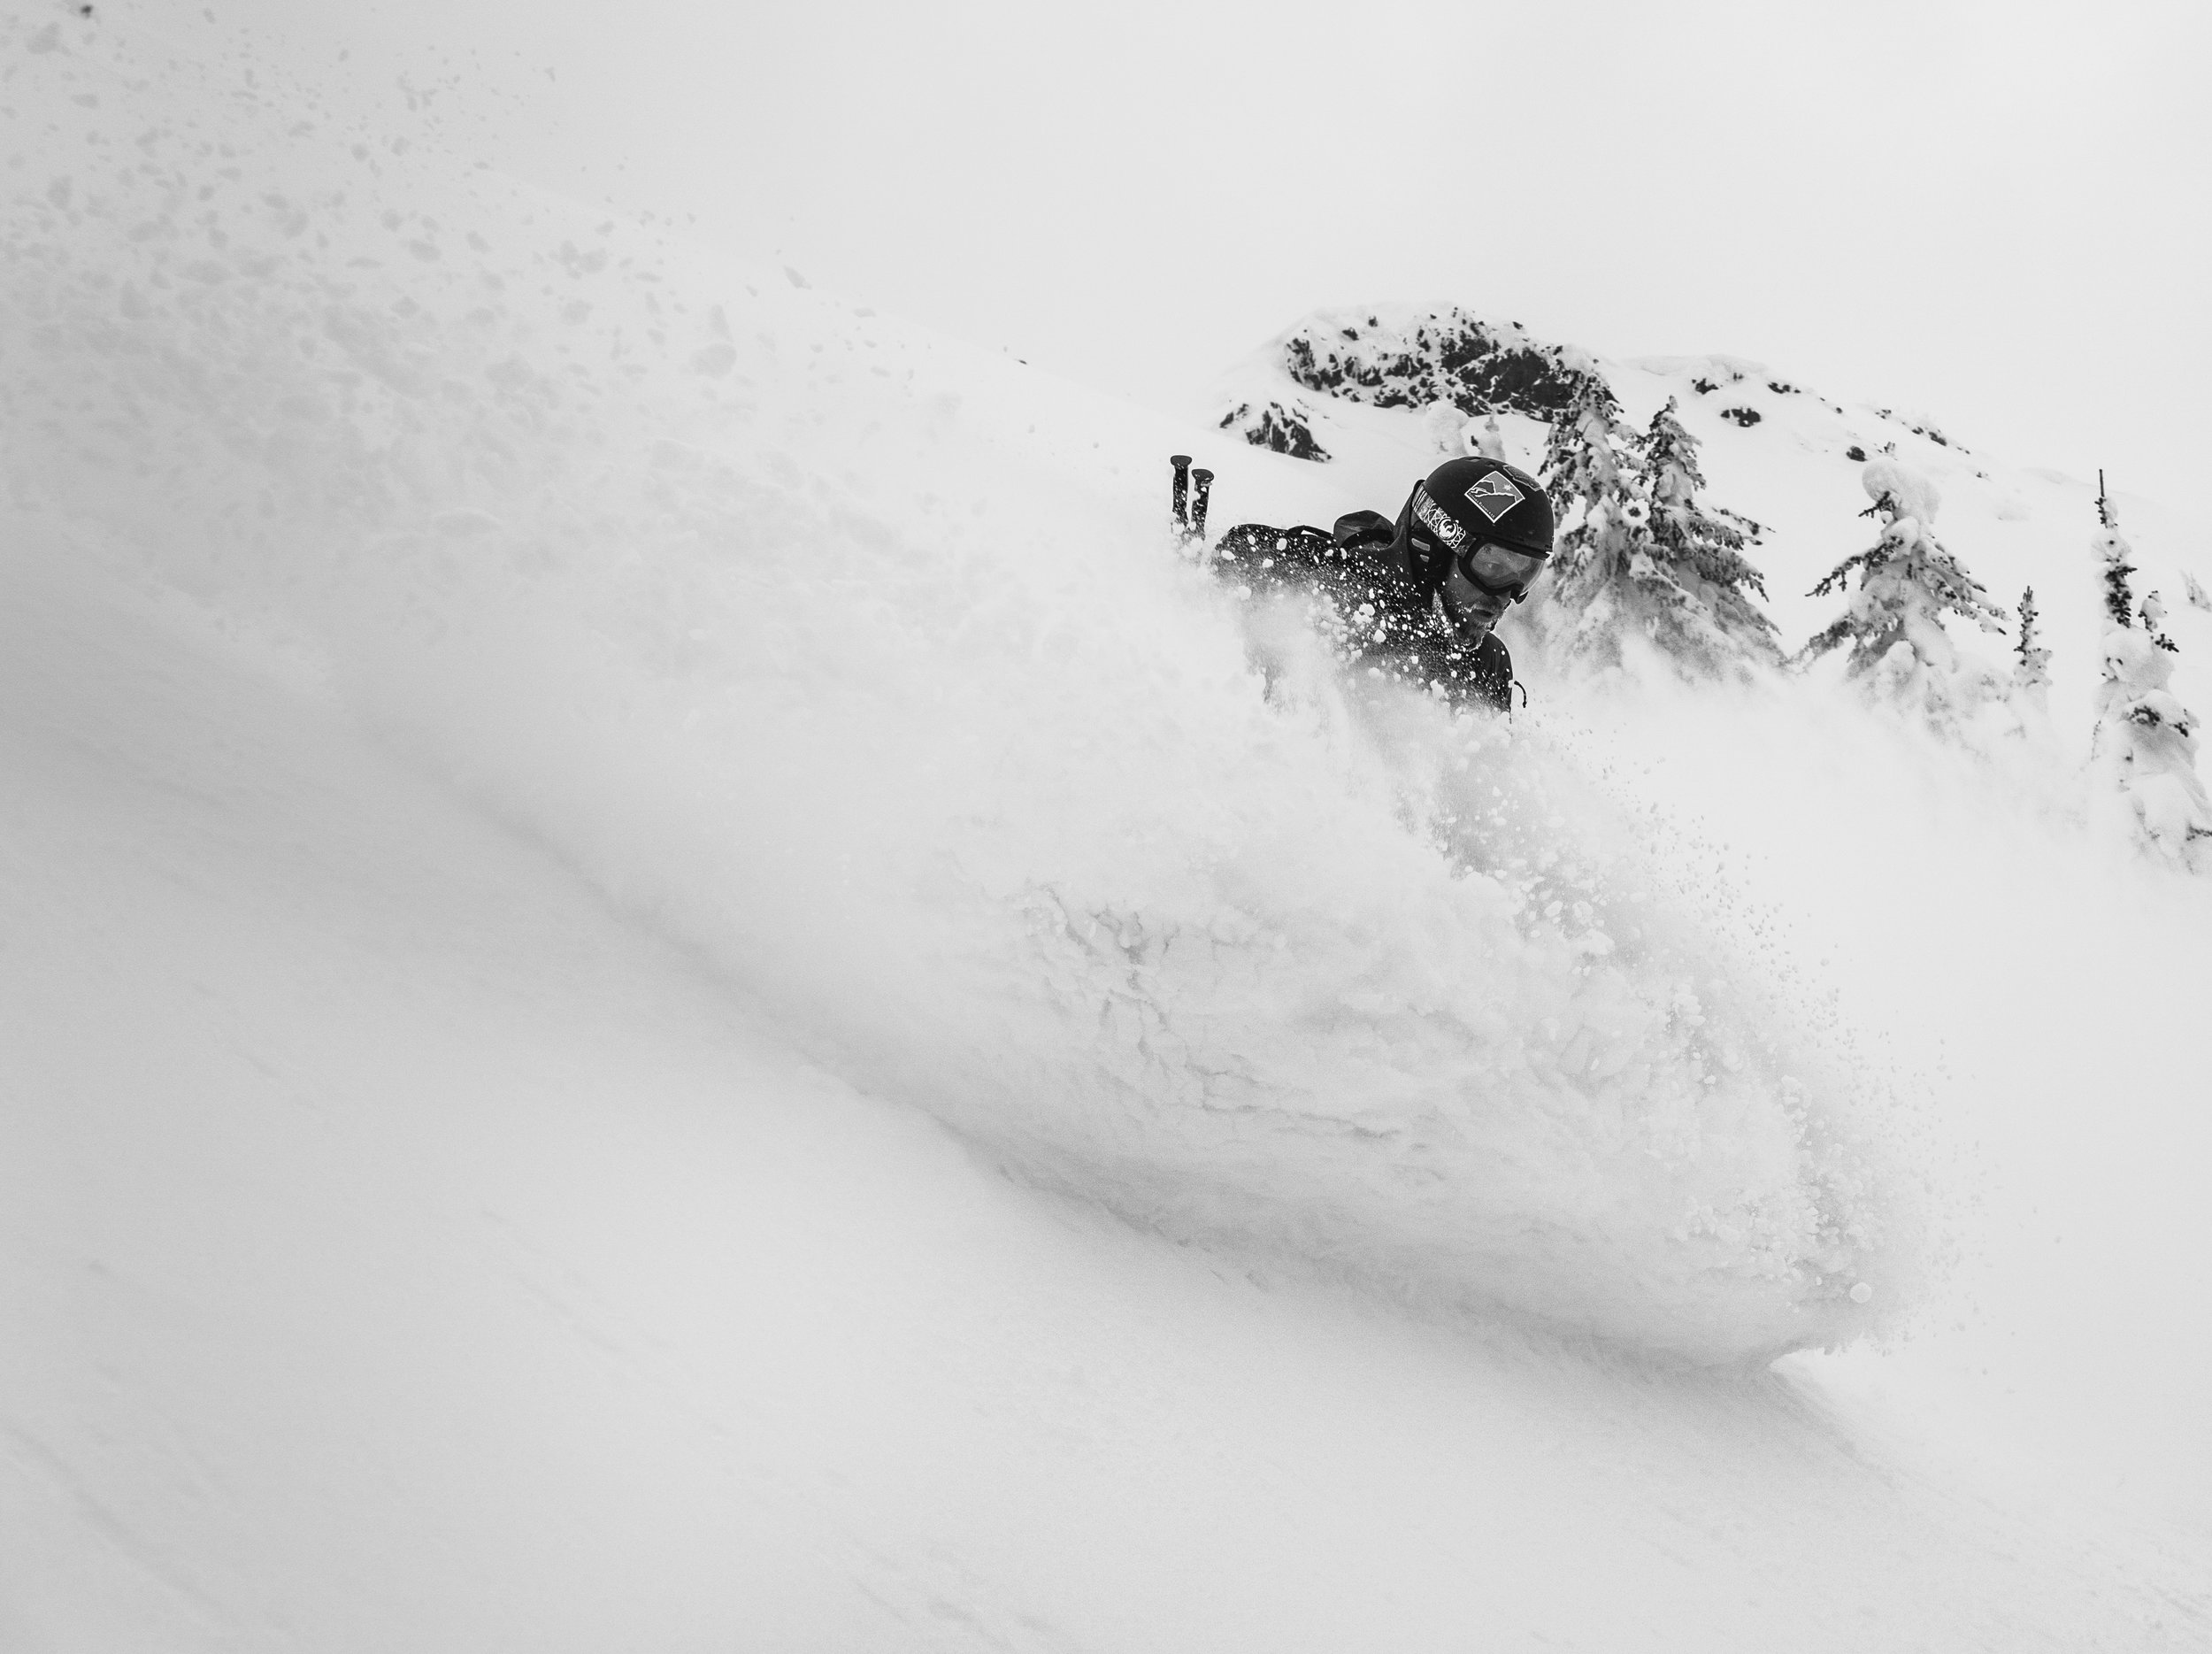 Jeff finds the deep white glory of POW!